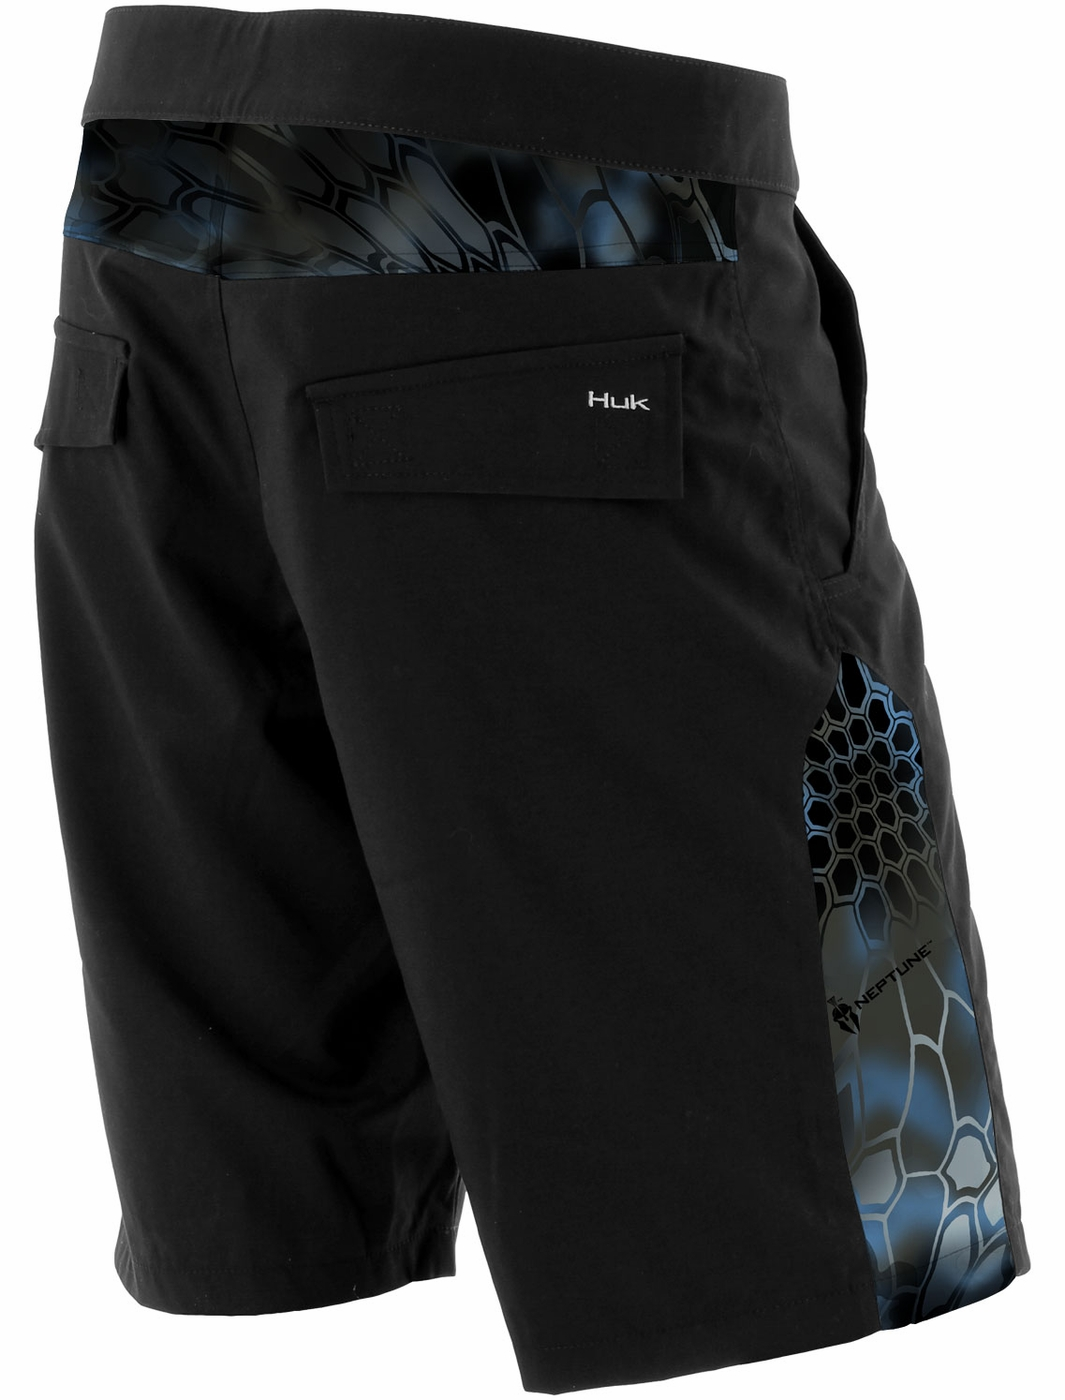 Huk kryptek board shorts black neptune tackledirect for Huk fishing shorts